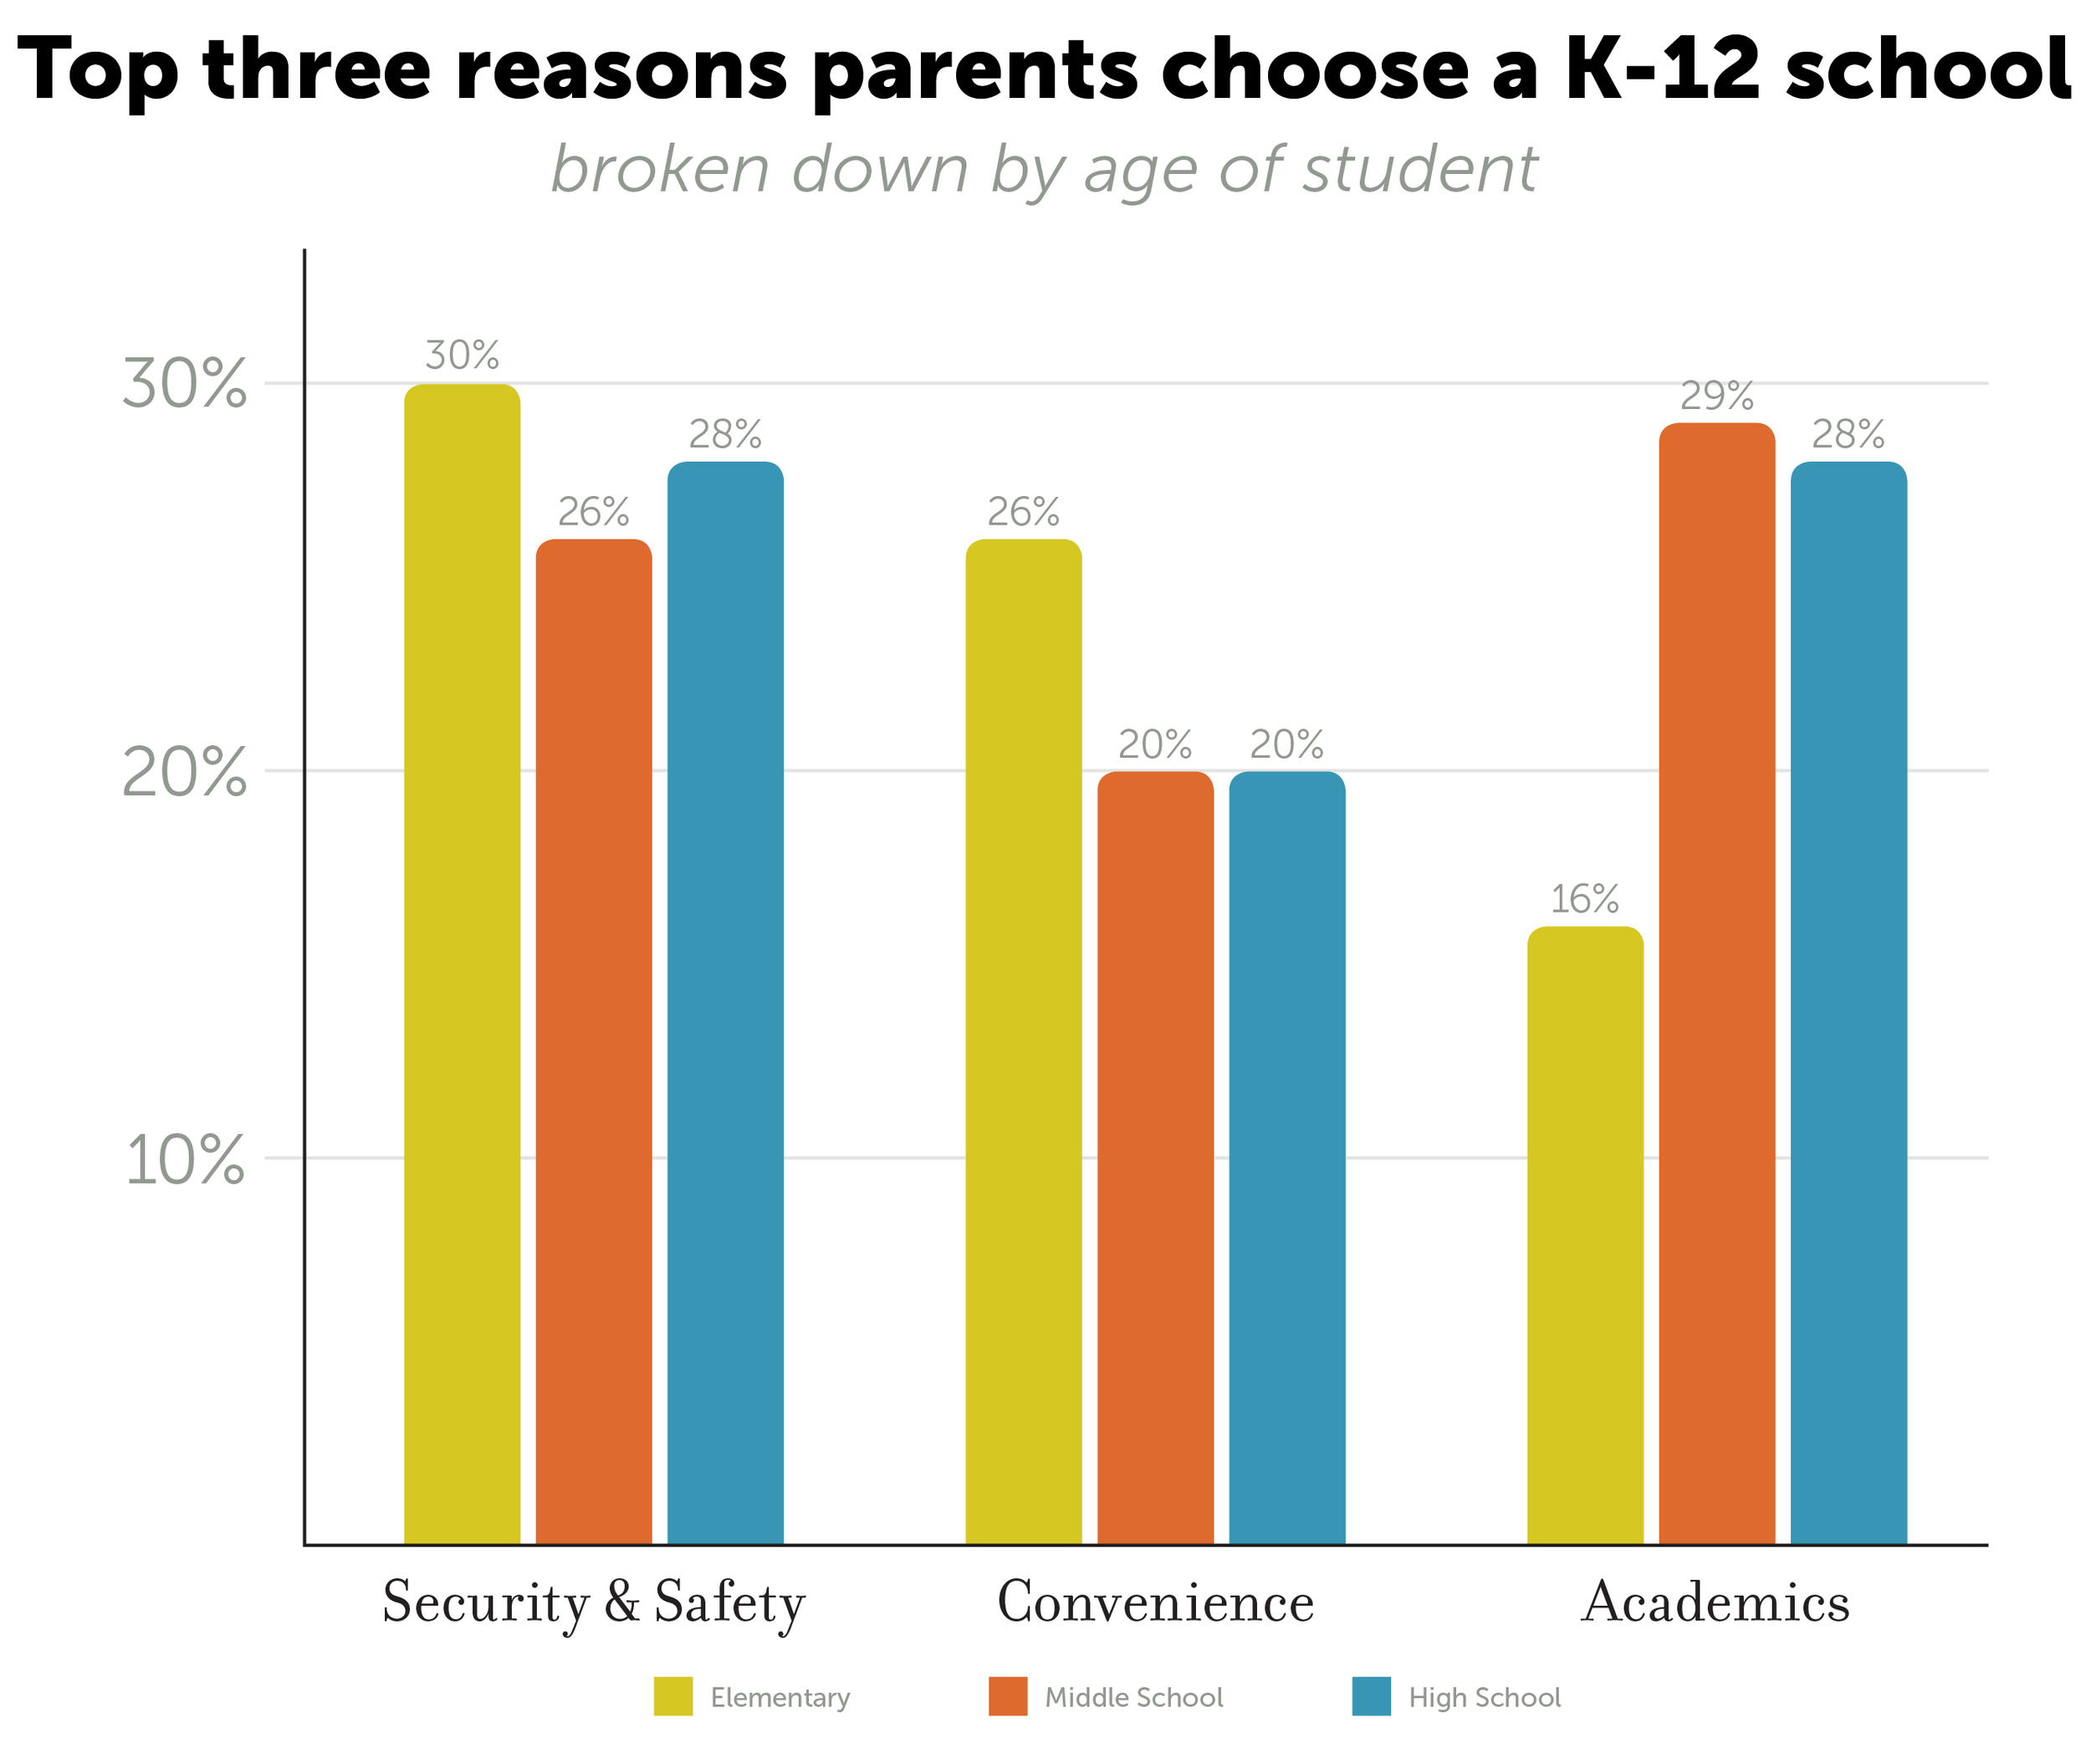 As students get older and the stakes get higher for college and career, academics rise to the top. But for parents of elementary-aged students, safety and security, and convenience far outweigh the academic priority.